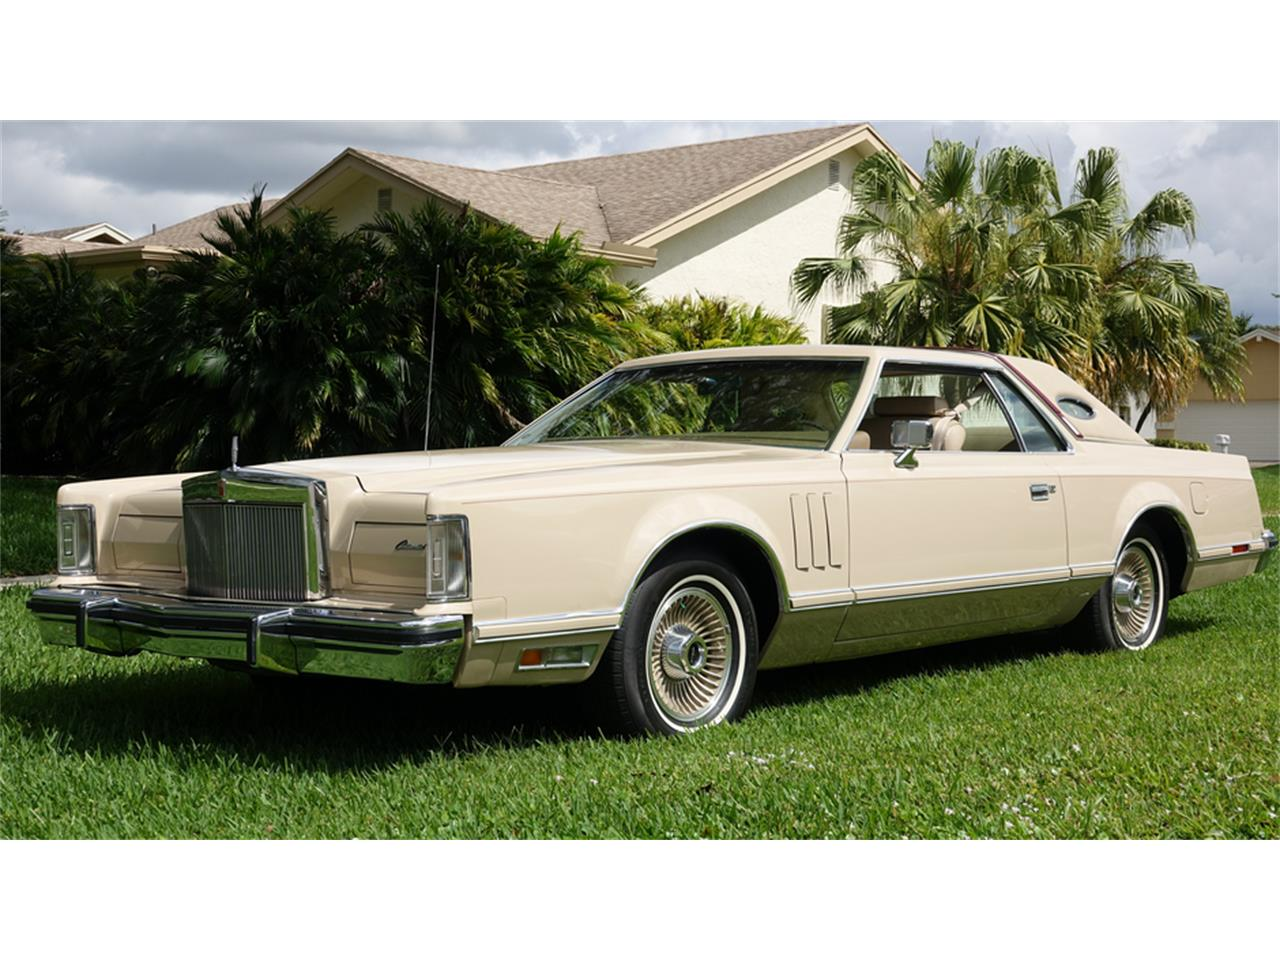 For Sale: 1979 Lincoln Continental Mark V in Boca Raton, Florida